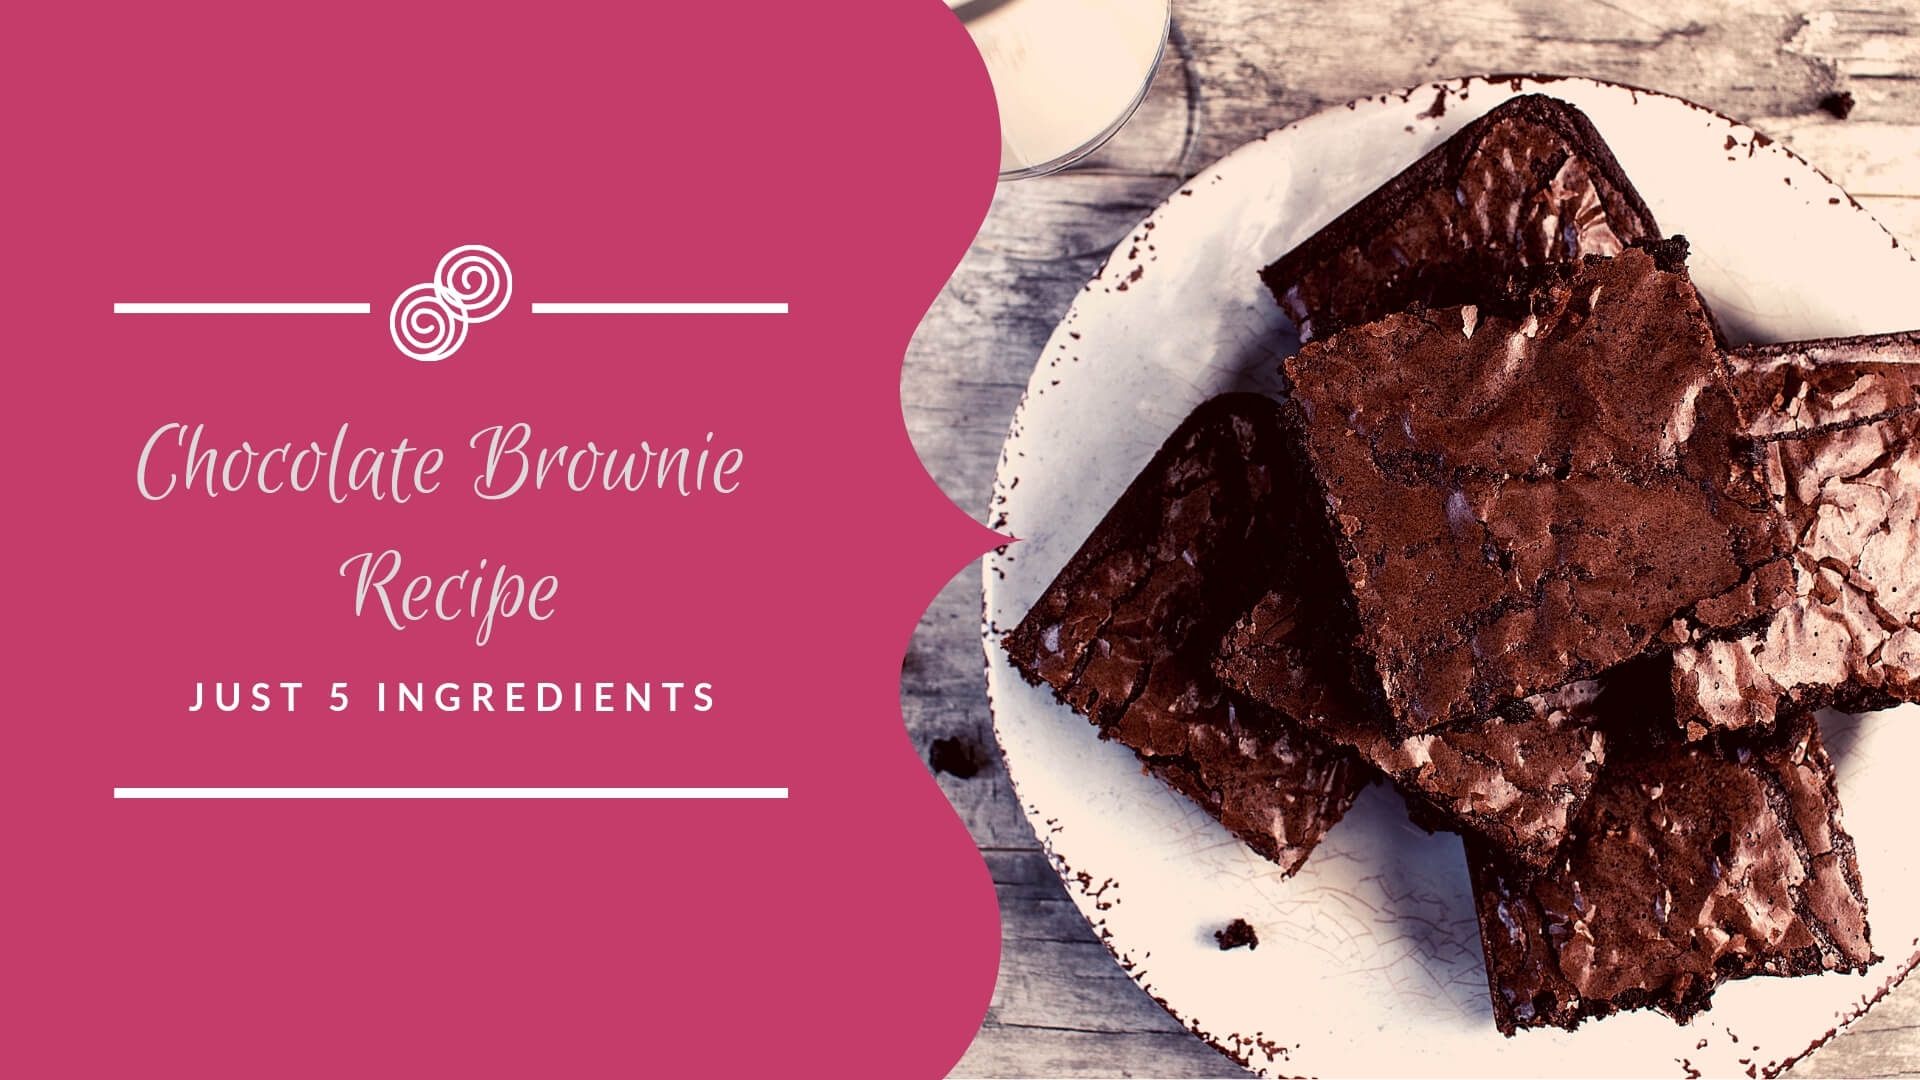 Chocolate Brownie Recipe (1)